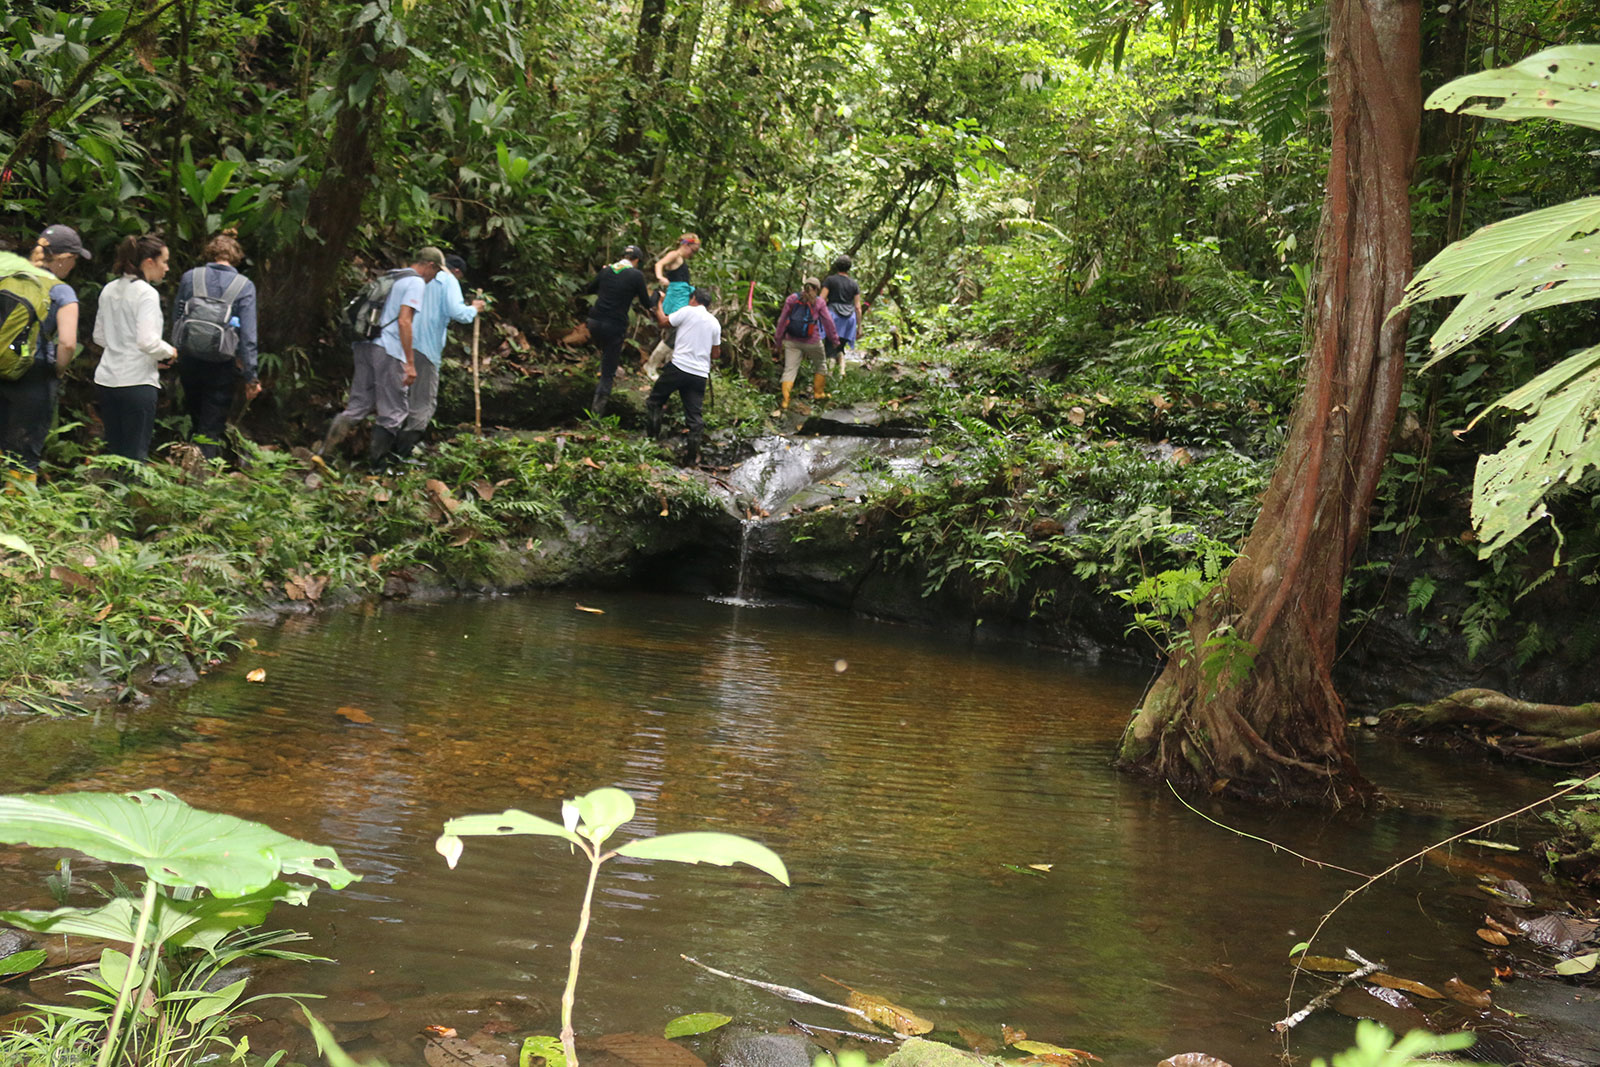 A group passes a stream while hiking on a trail through the forest